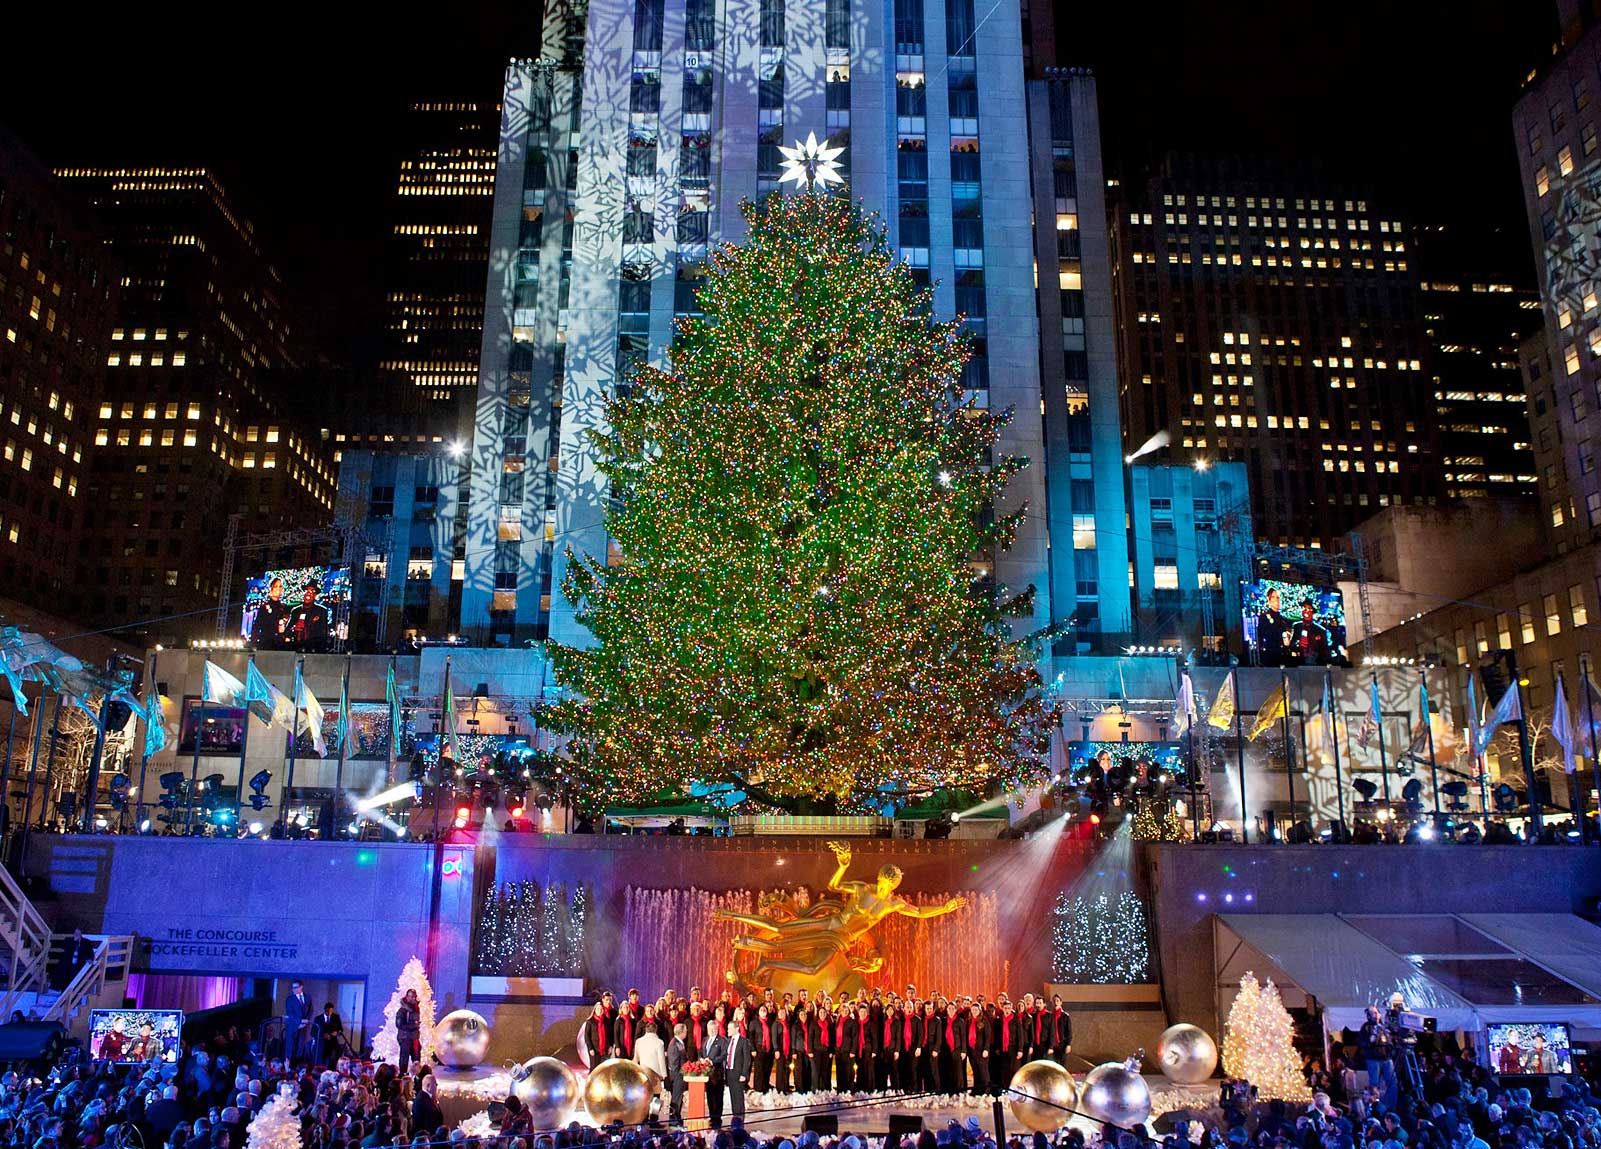 Christmas Tree Nyc 2019 Christmas in New York 2019   Rockefeller Center Christmas Tree